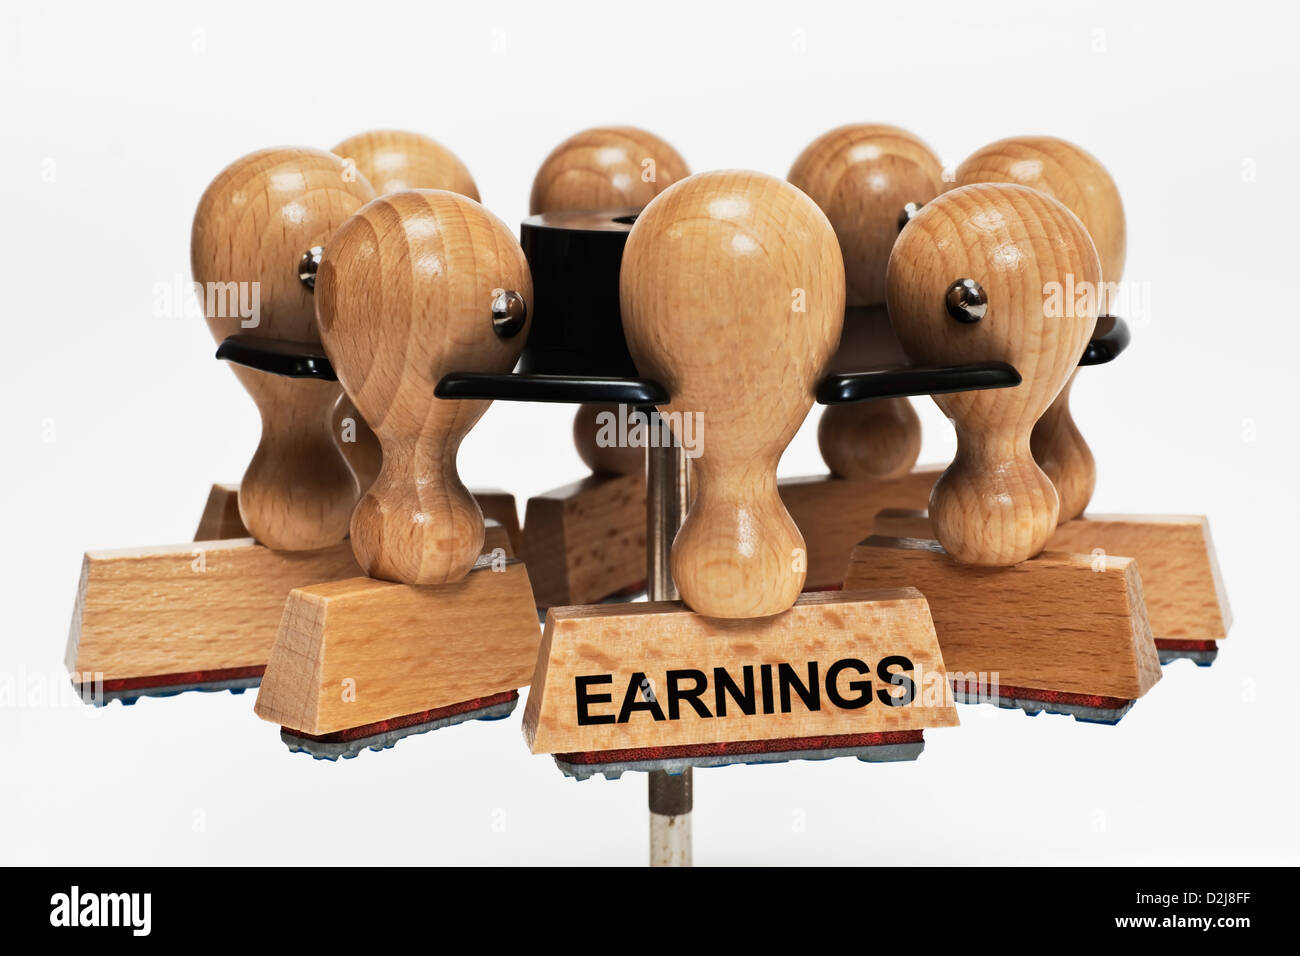 Many stamps hanging in a stamp rack. One stamp with the inscription earnings hangs in front, background white. - Stock Image